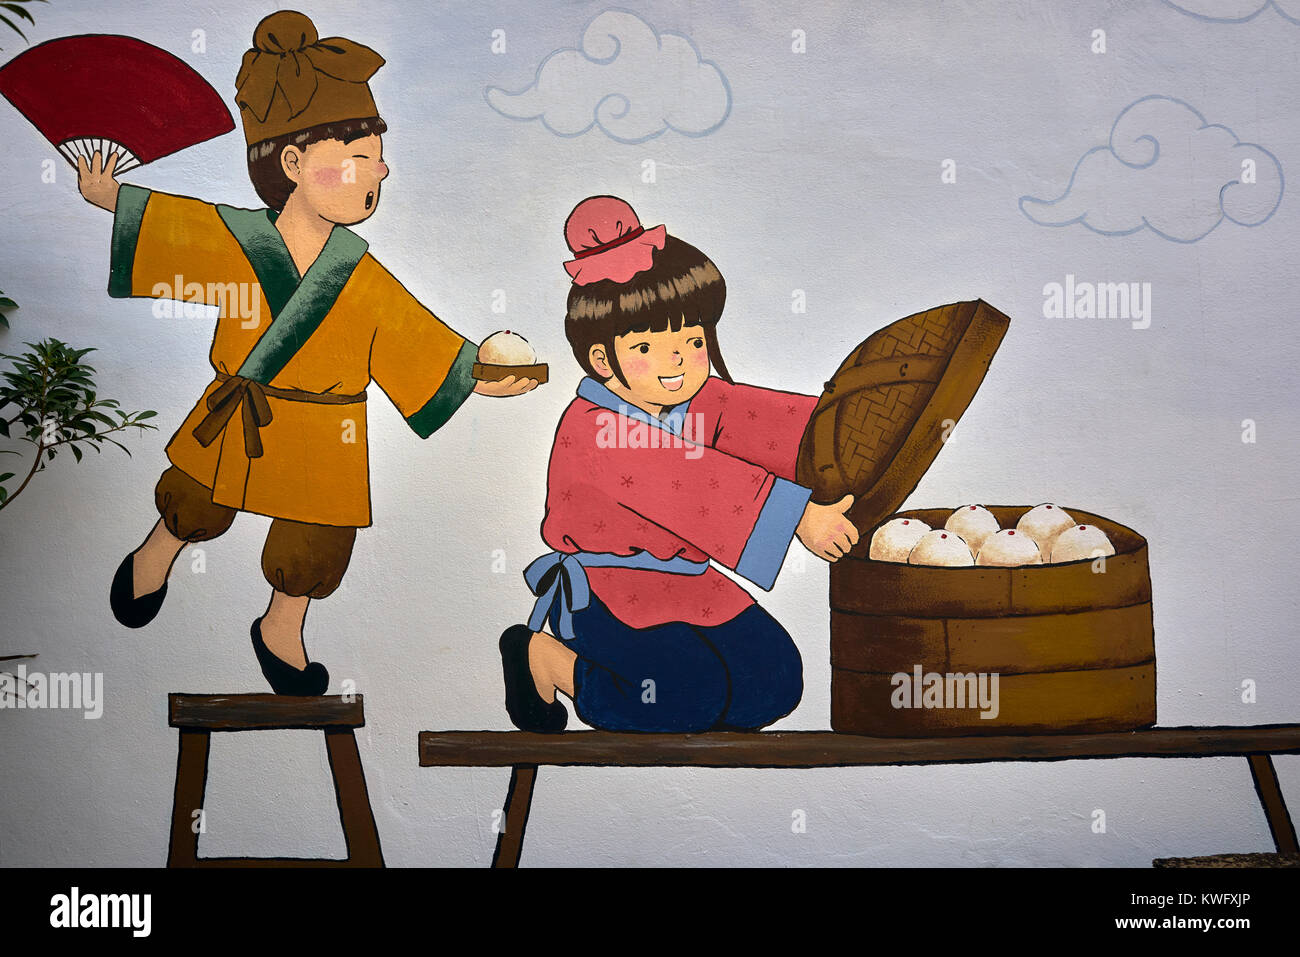 Wall art, Chinese illustration. - Stock Image